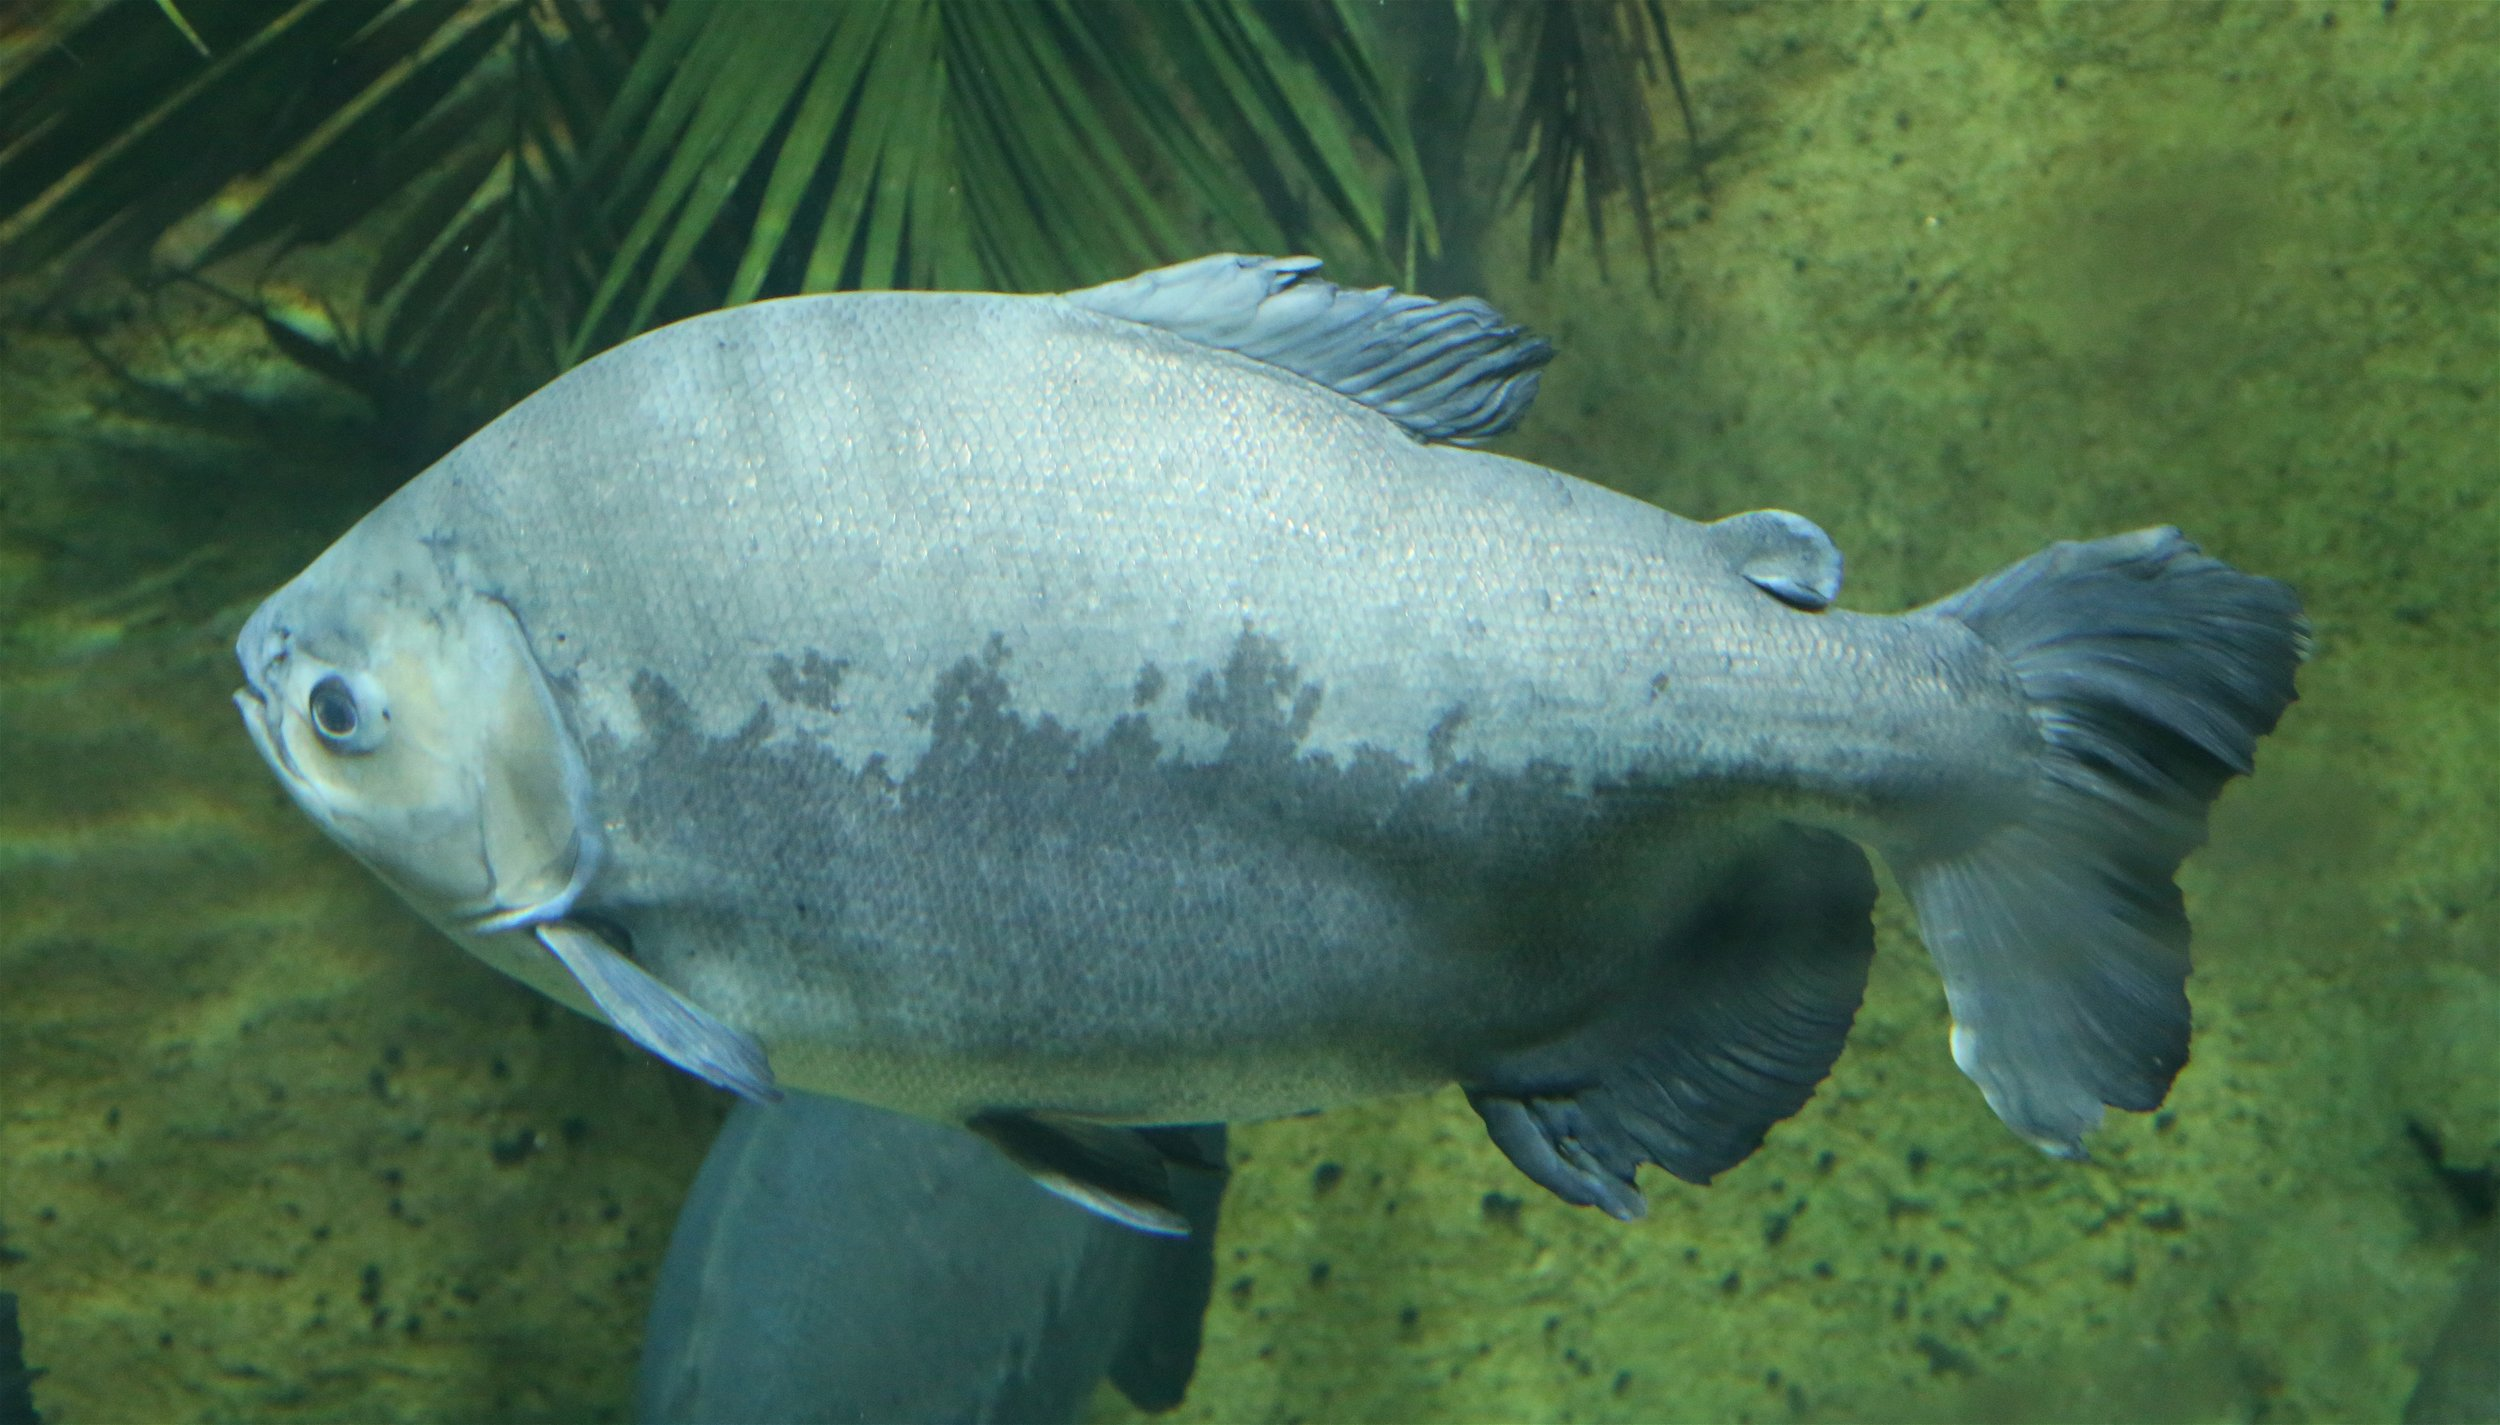 A big ol' pacu looking for its next fruit meal.